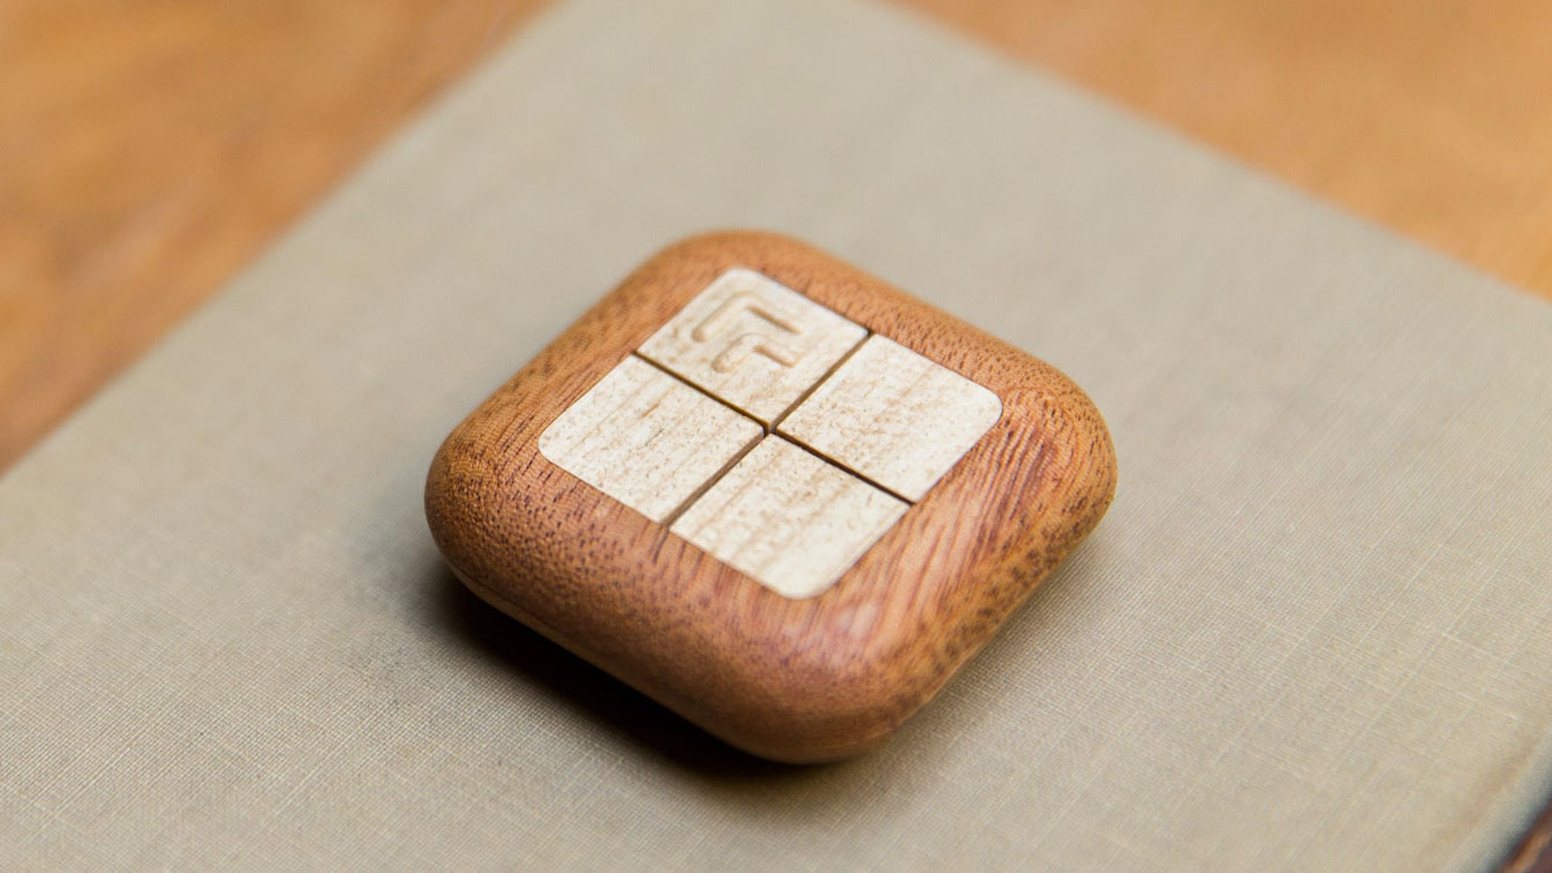 Instant control of Hue lights, smart devices, apps, and more — all from a beautiful mahogany remote.